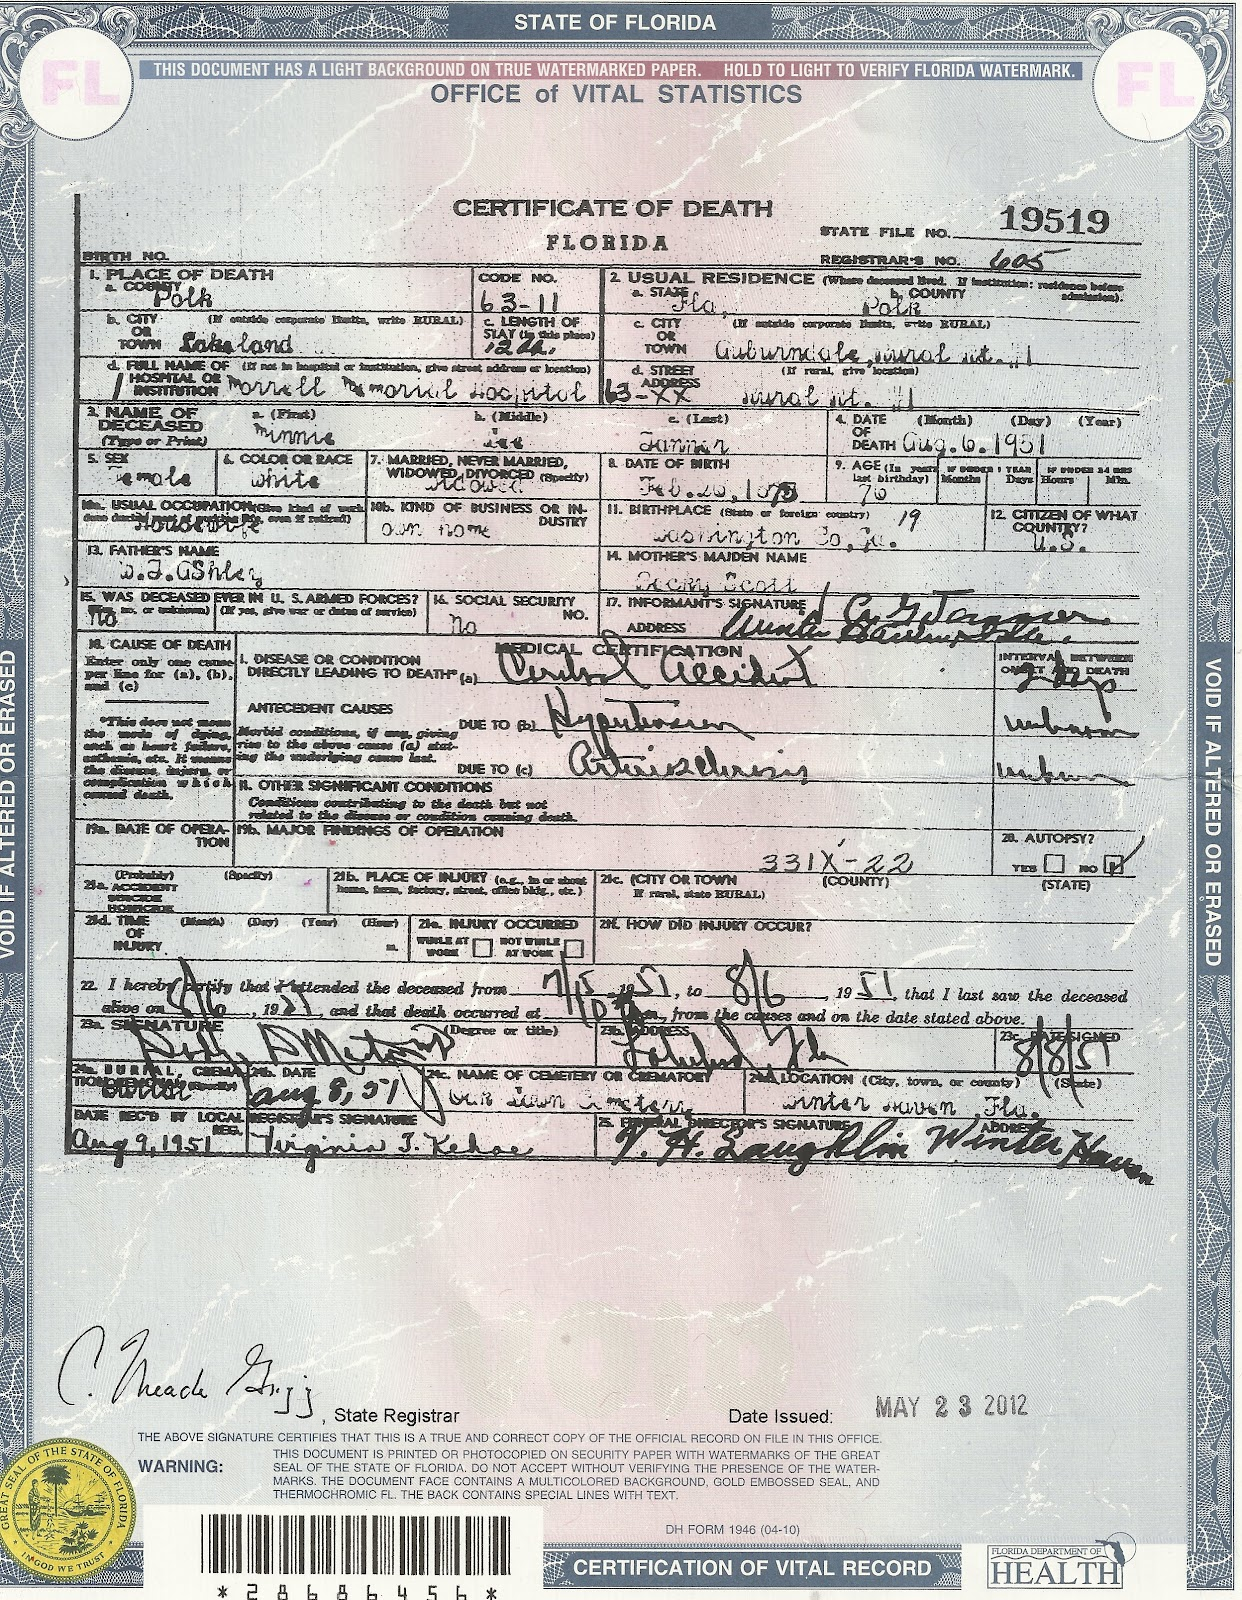 Salabencher Death Certificates For Various Family Members From The